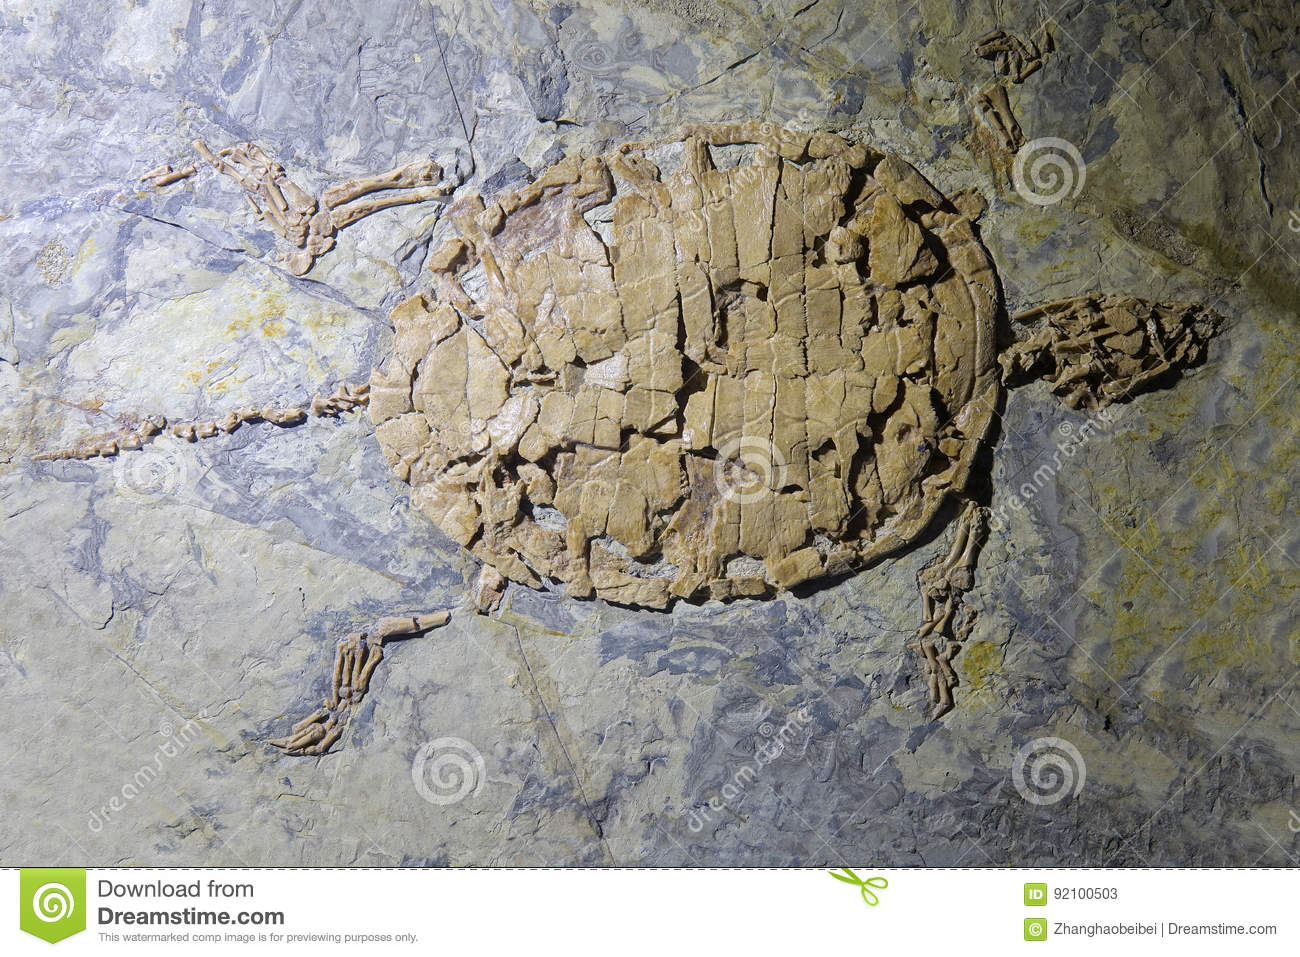 Download Turtle fossil stock image. Image of rock, antiquity, turtle - 92100503